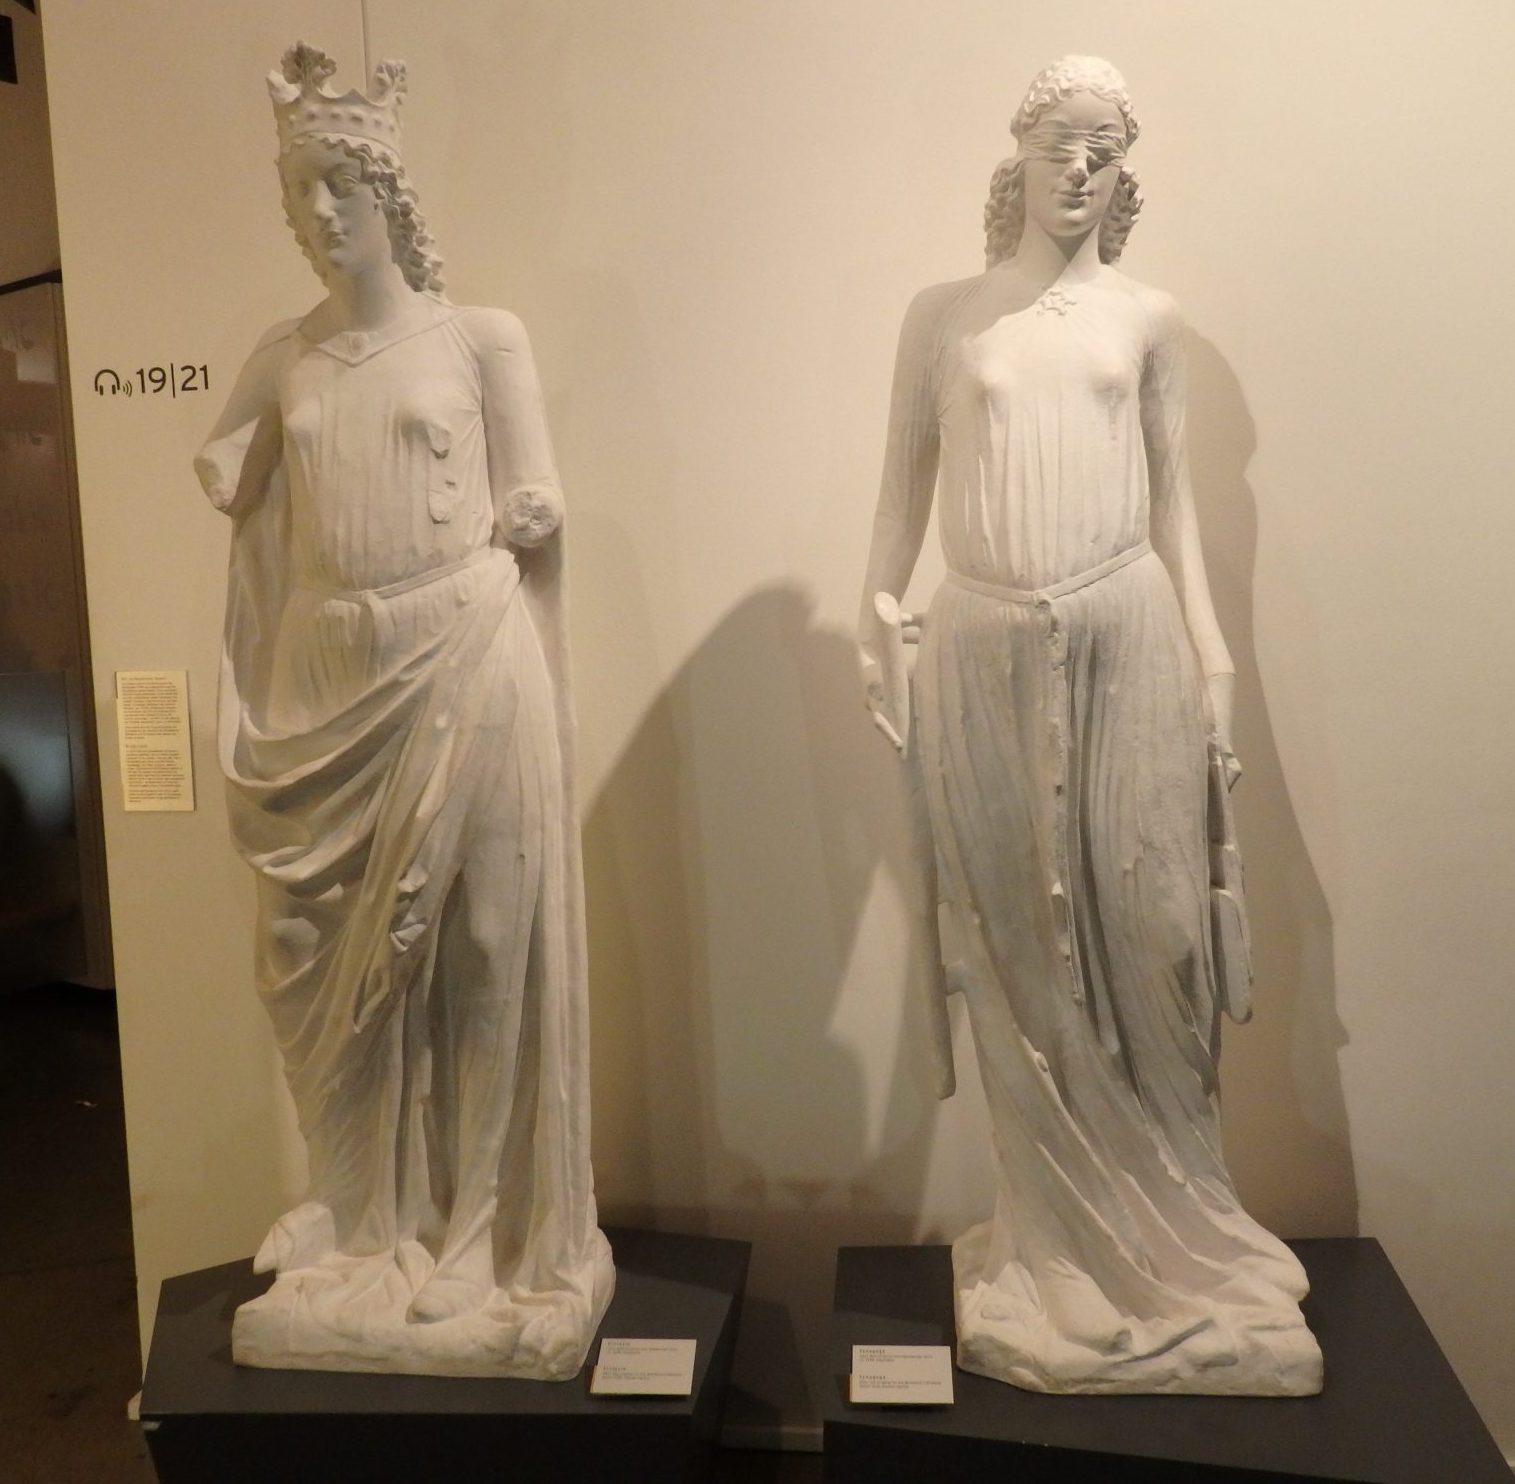 """medieval statues. According to the museum sign, Synagoga, right, representing Judaism, is """"blind to salvation and thus inferior to her rival Ecclesia, left, who symbolized the Church."""" Shows Christian attitudes toward Jews in the Middle Ages."""